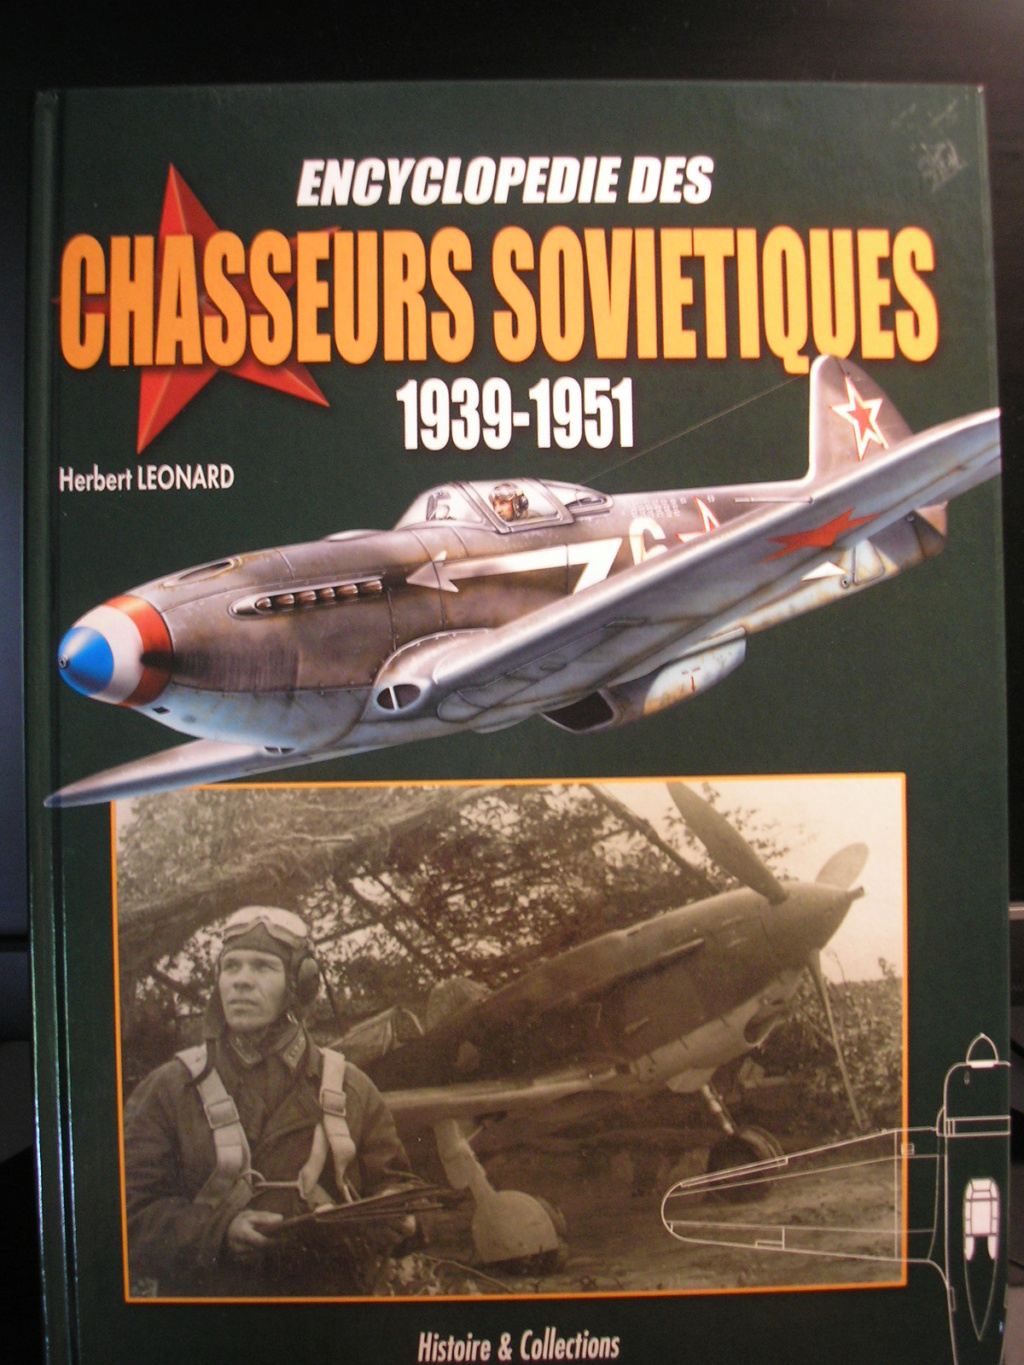 AERO-JOURNAL n°HS29 LES CHASSEURS YAKOVLEV  Chasse11